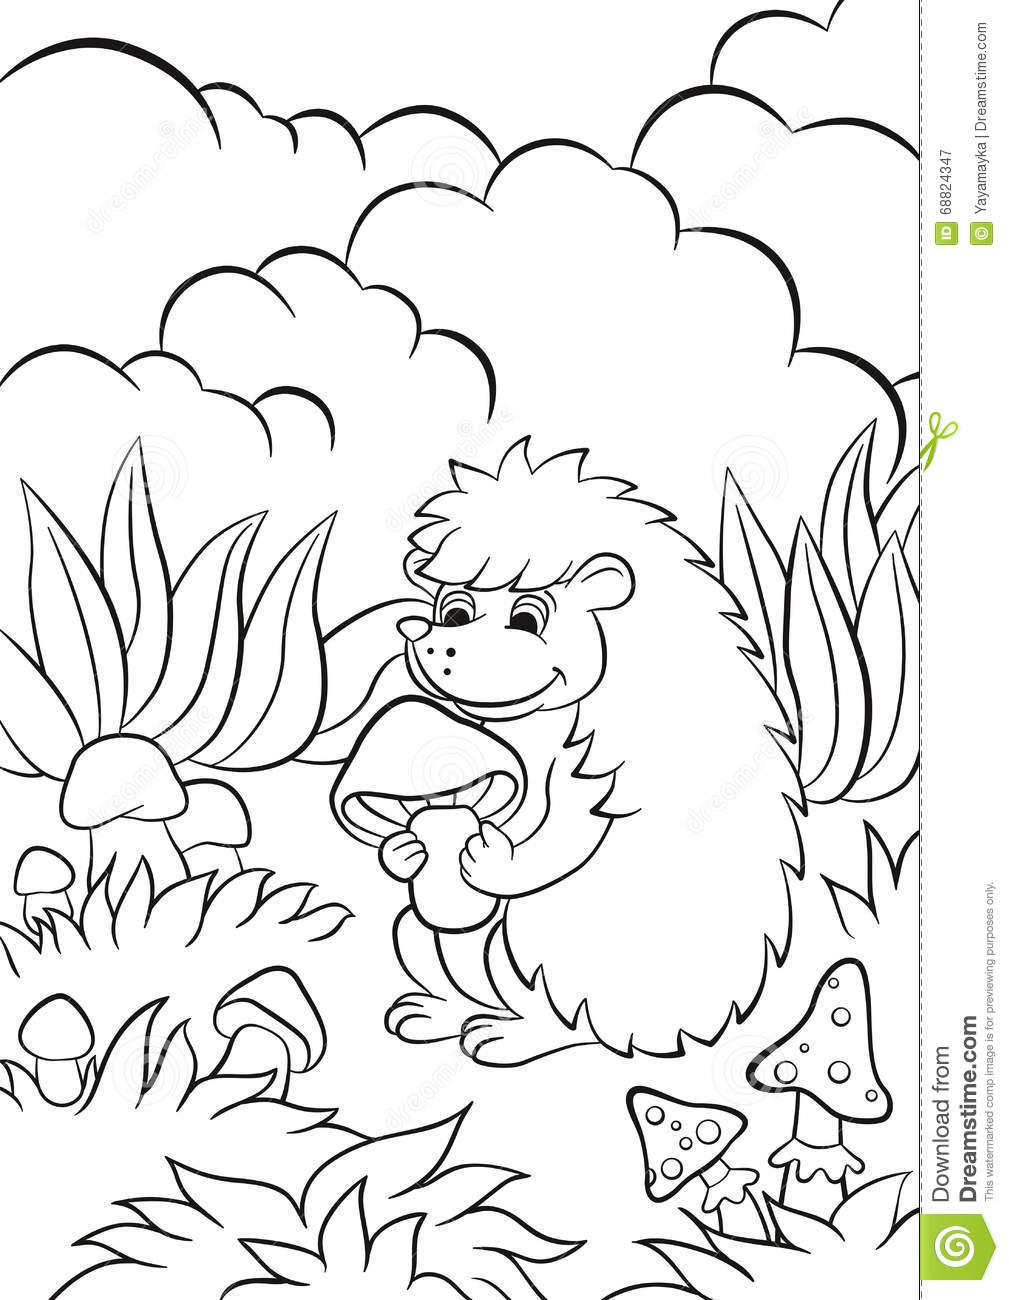 Little Cute Hedgehog Holds The Mushroom In The Paws And